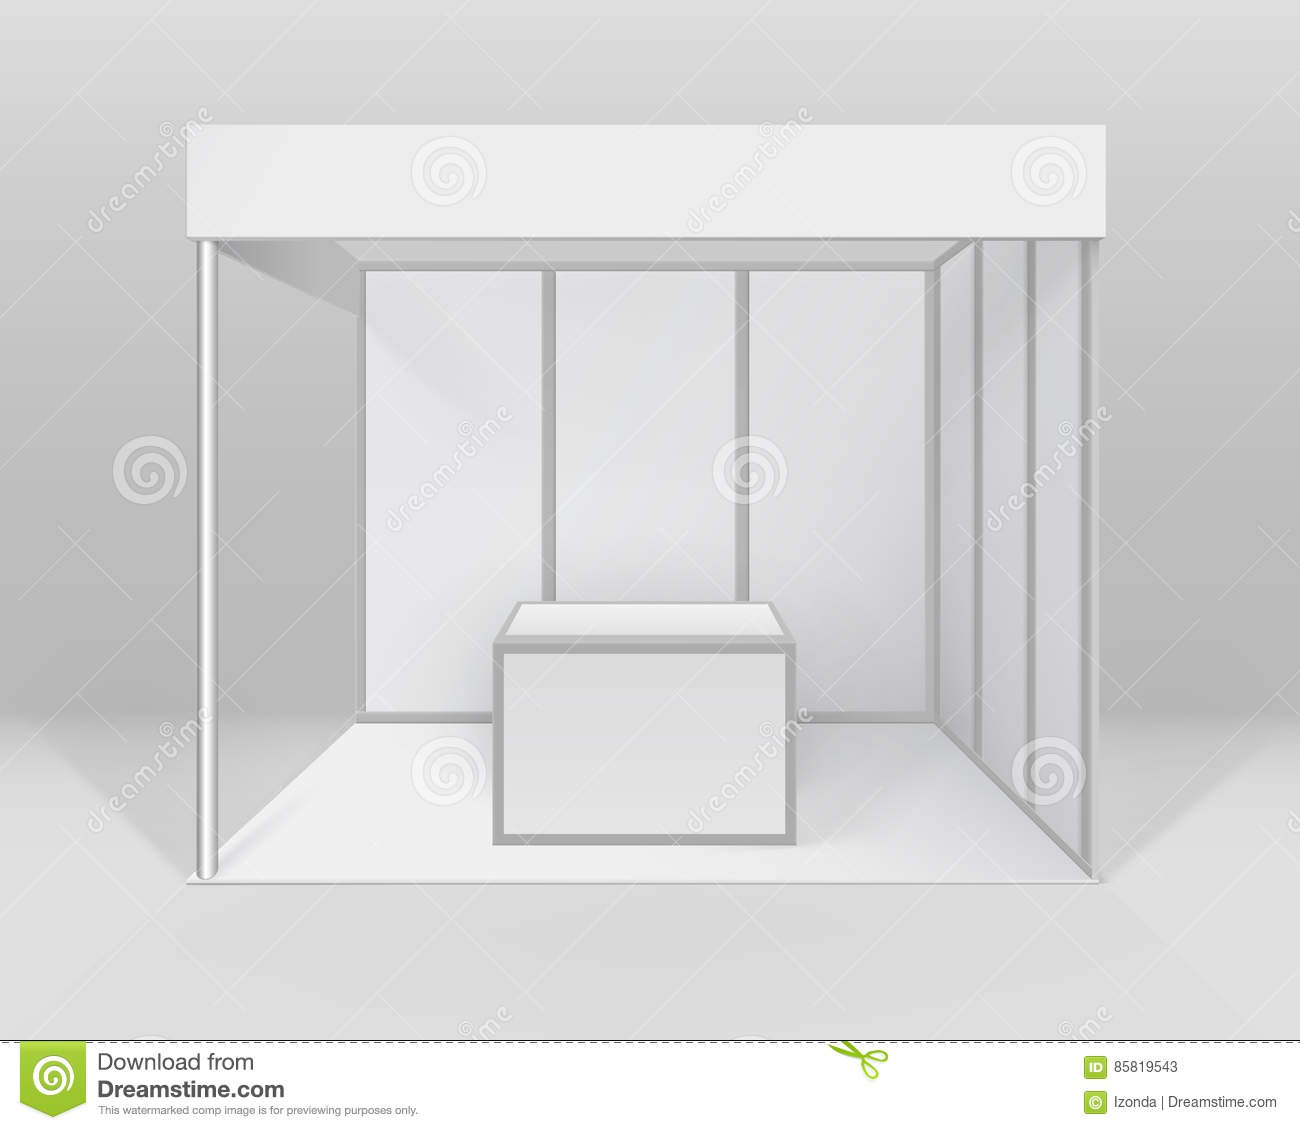 Exhibition Stand Vector : Blank white trade exhibition stand vector illustration